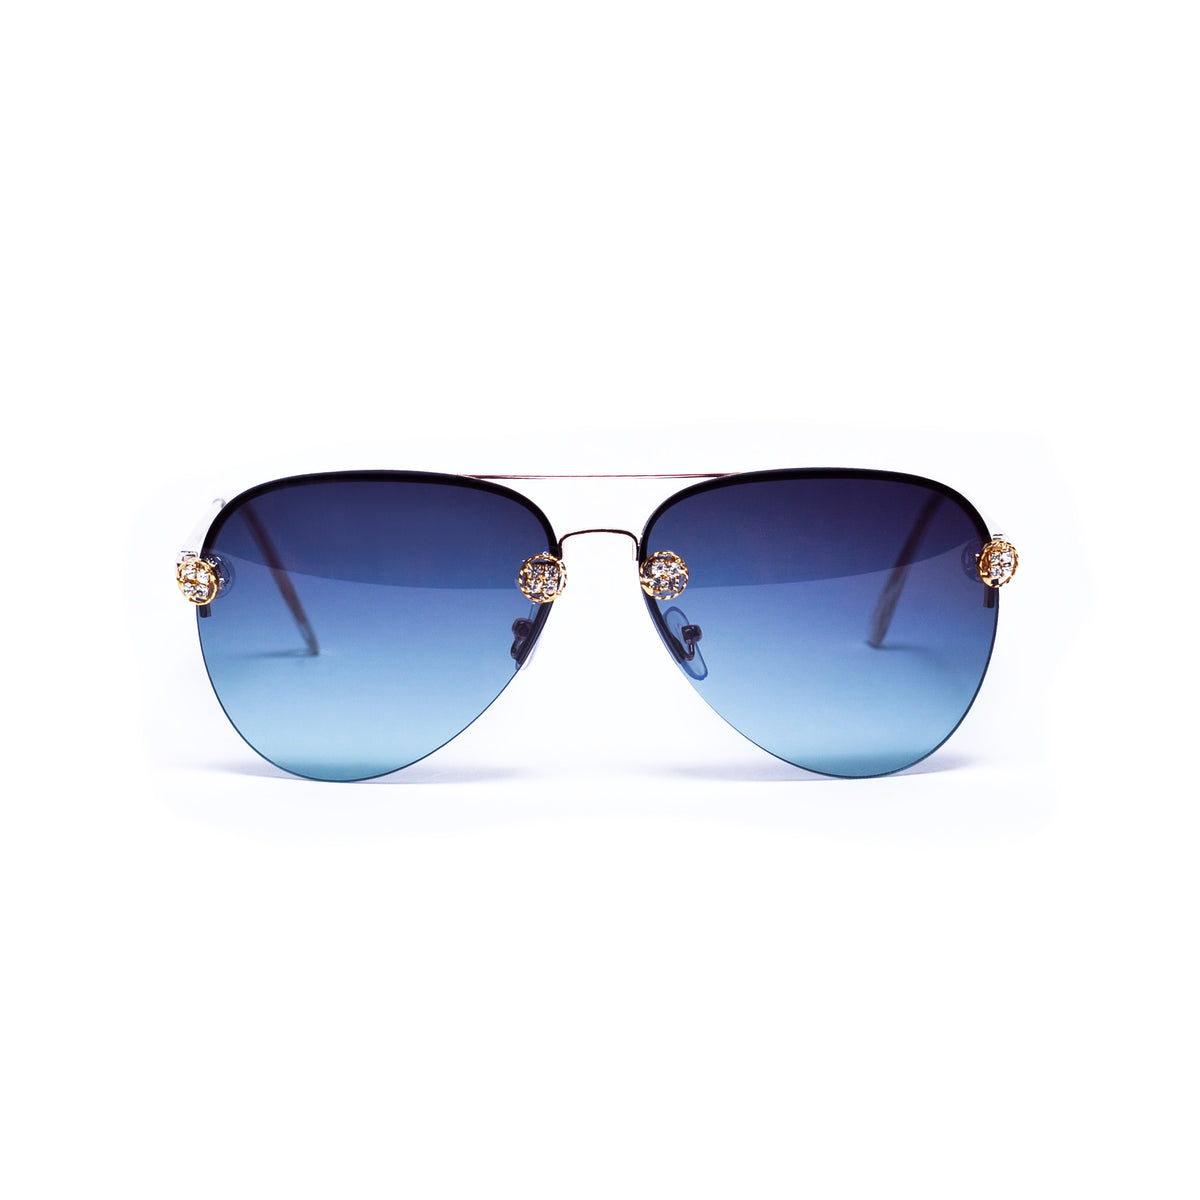 The Perfect Aviator - Black Out Collection  SUNNIES + OPTICS TNEMNRODA- NRODA